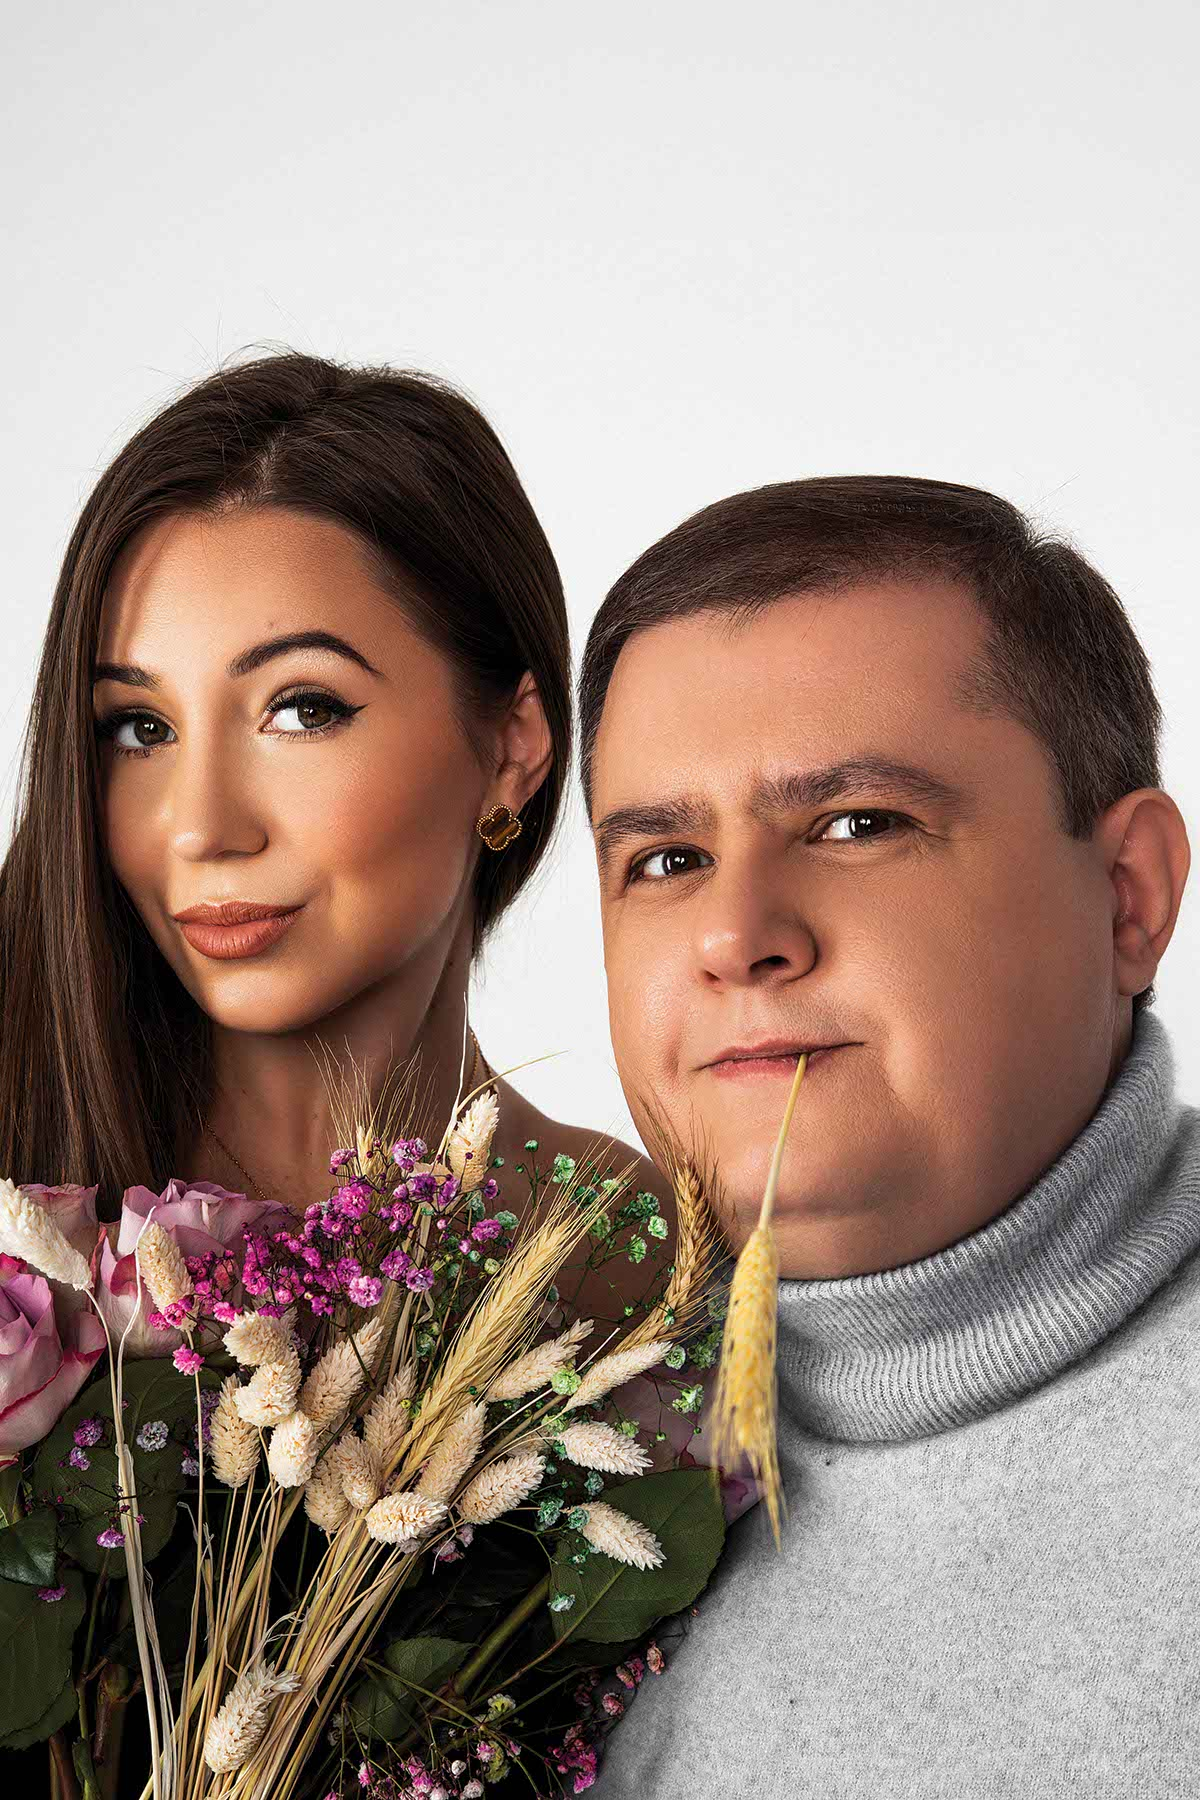 September: Alexander Kozyr and Elvira Gavrilova